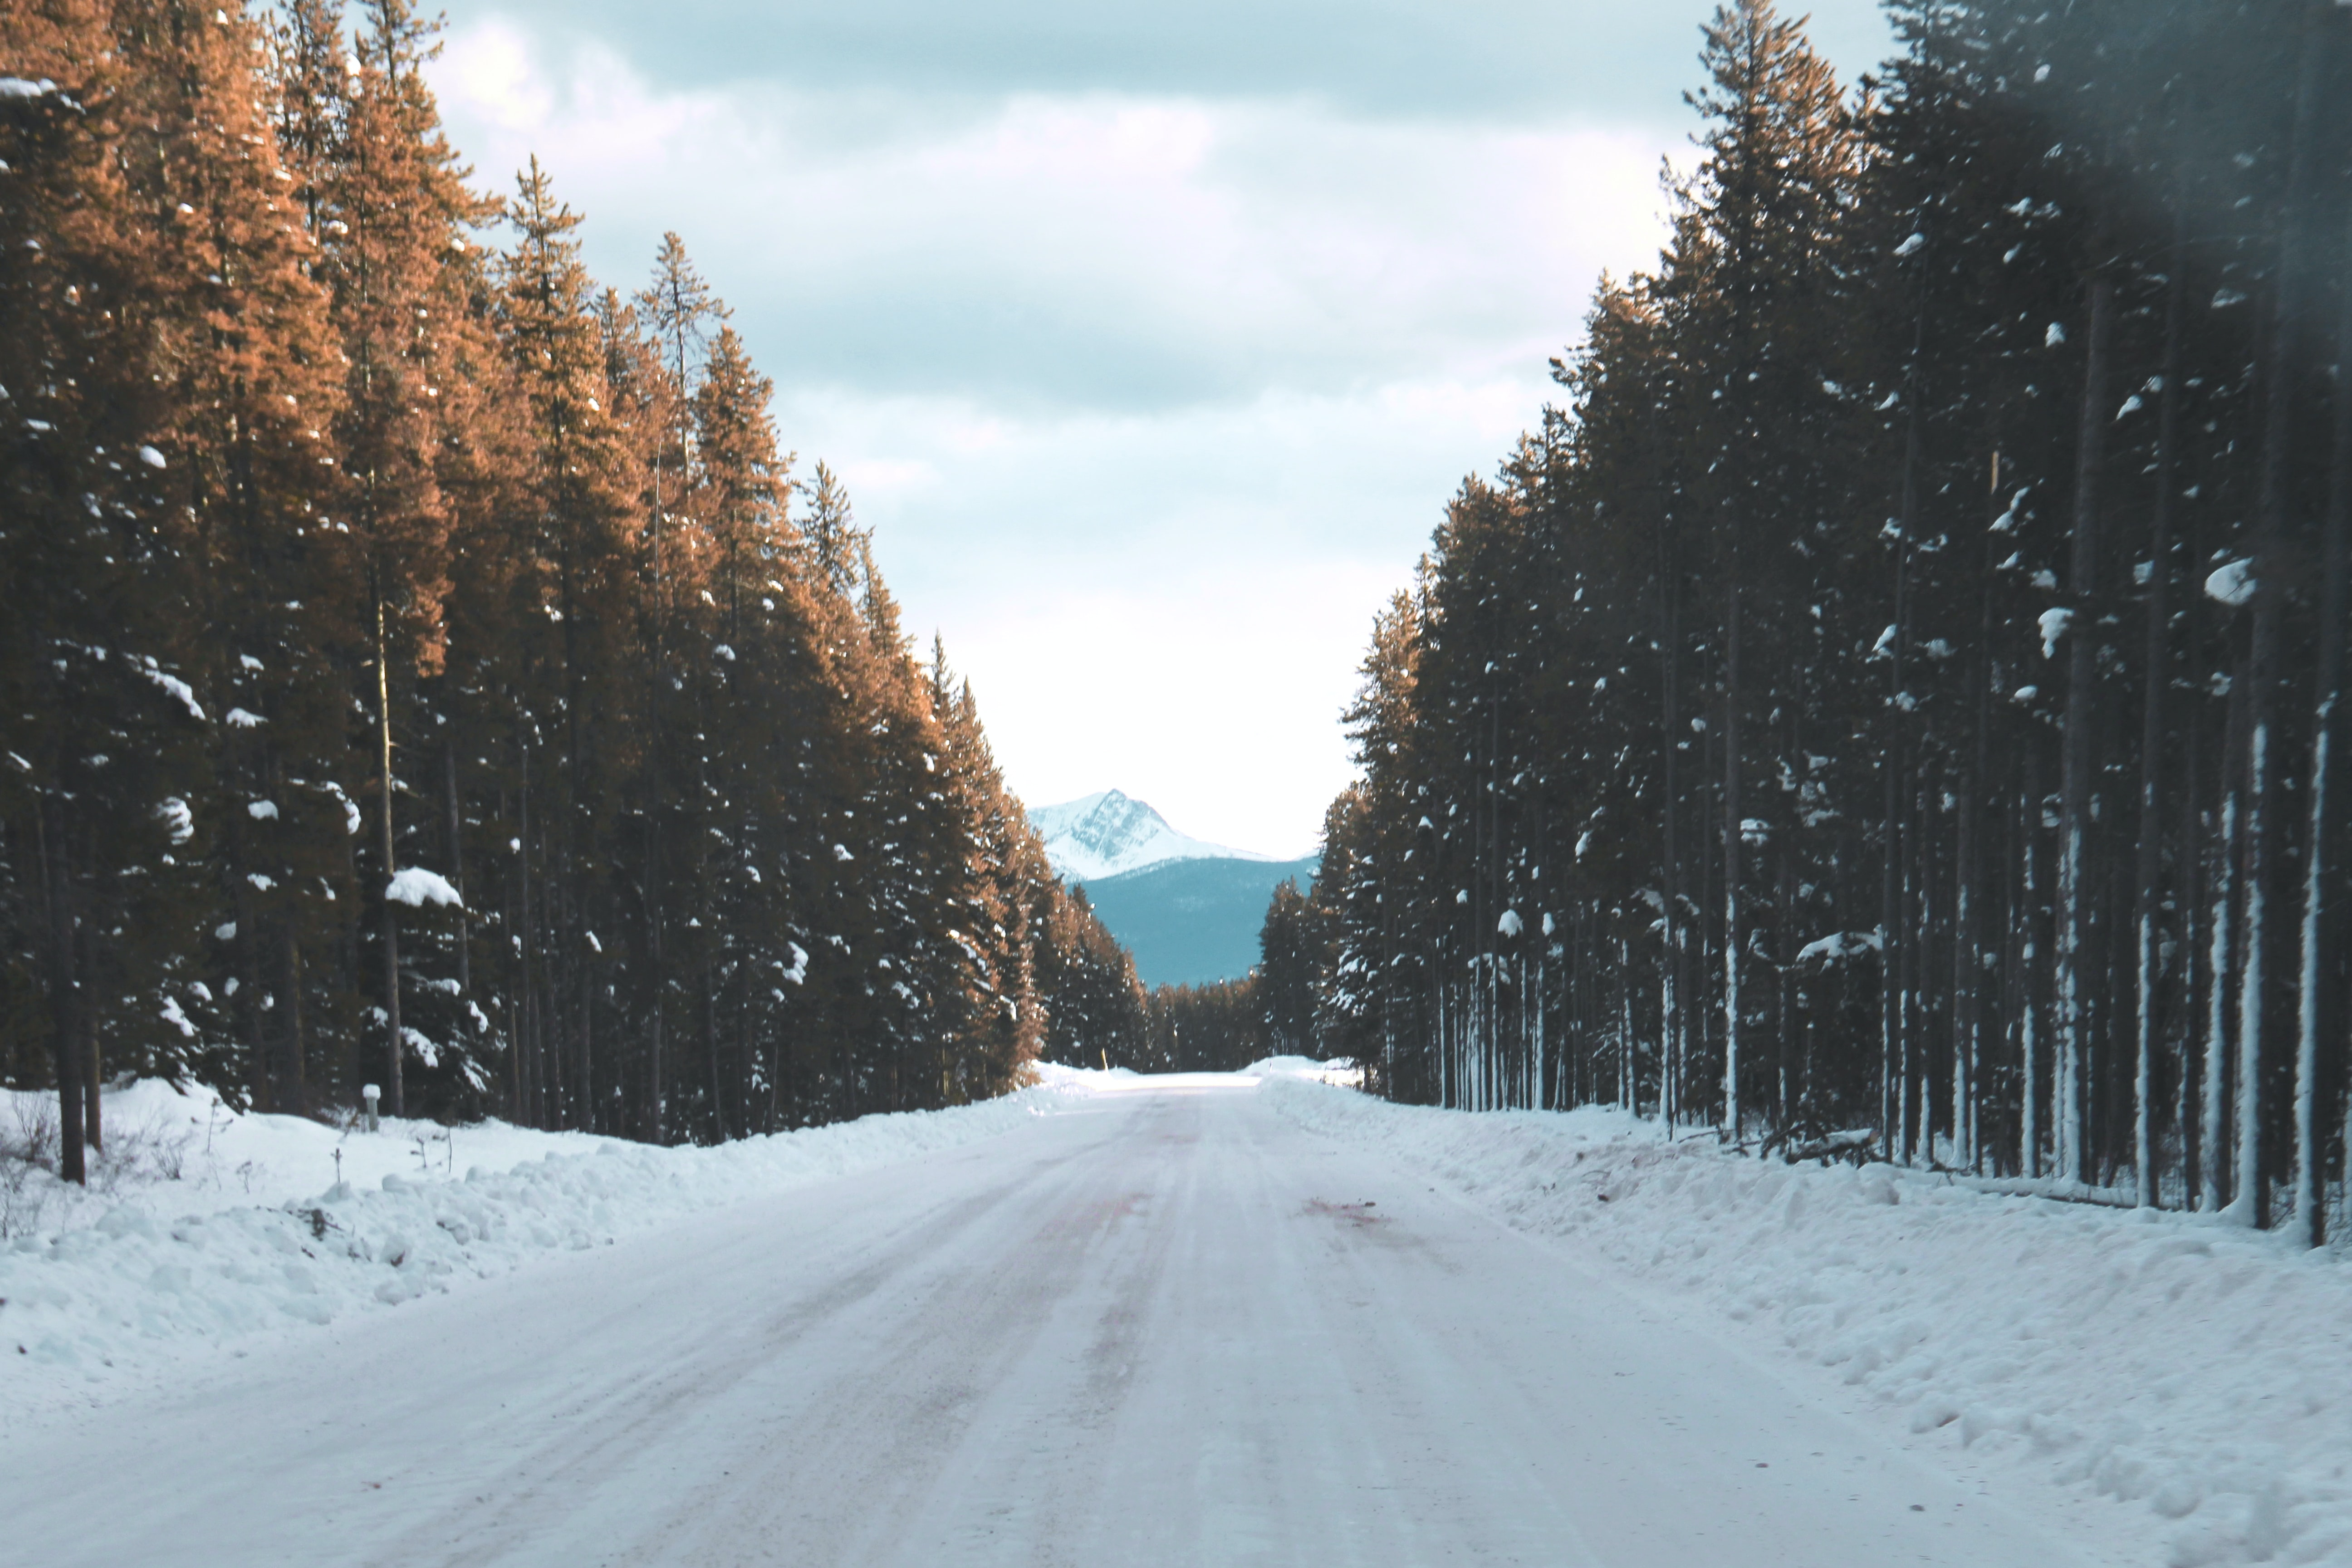 road filled with snow going to mountain between trees during snow